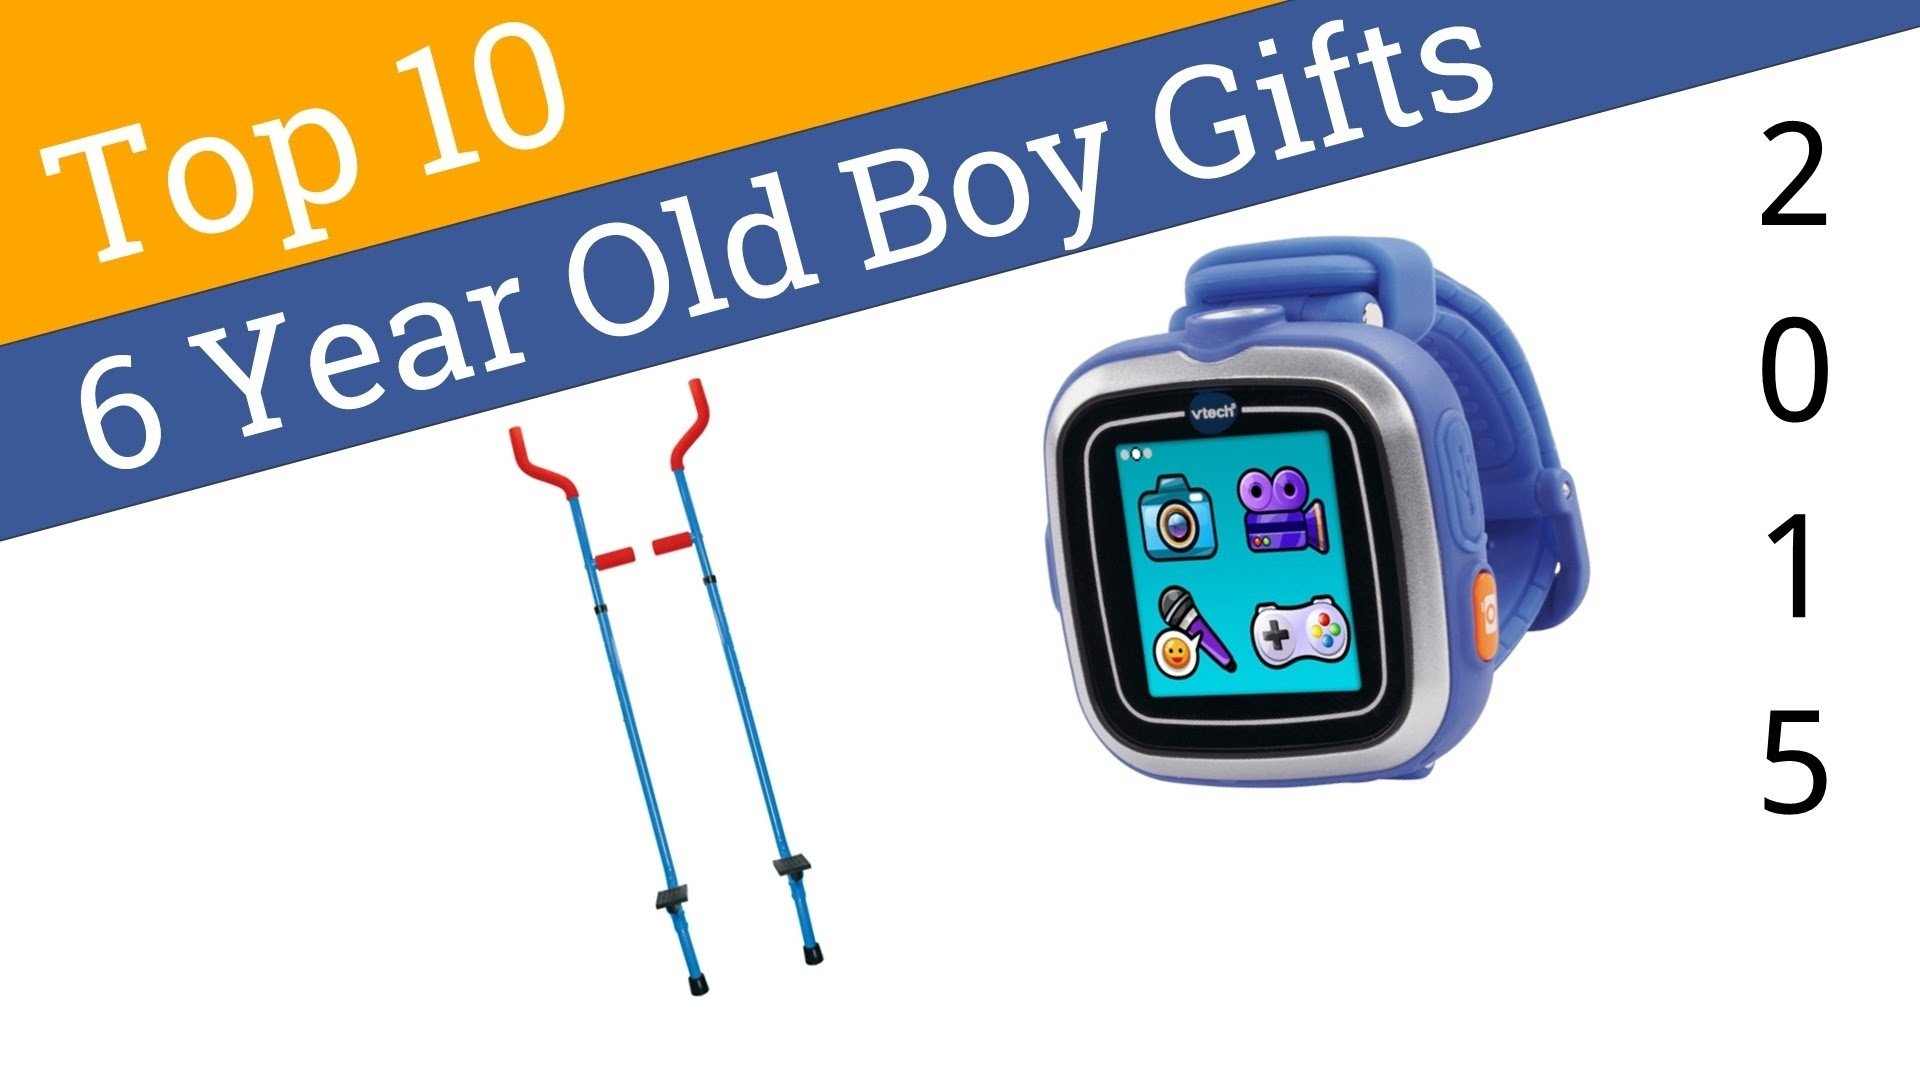 10 Famous Gift Ideas For 6 Year Old Boy 10 best 6 year old boy gifts 2015 youtube 2 2020